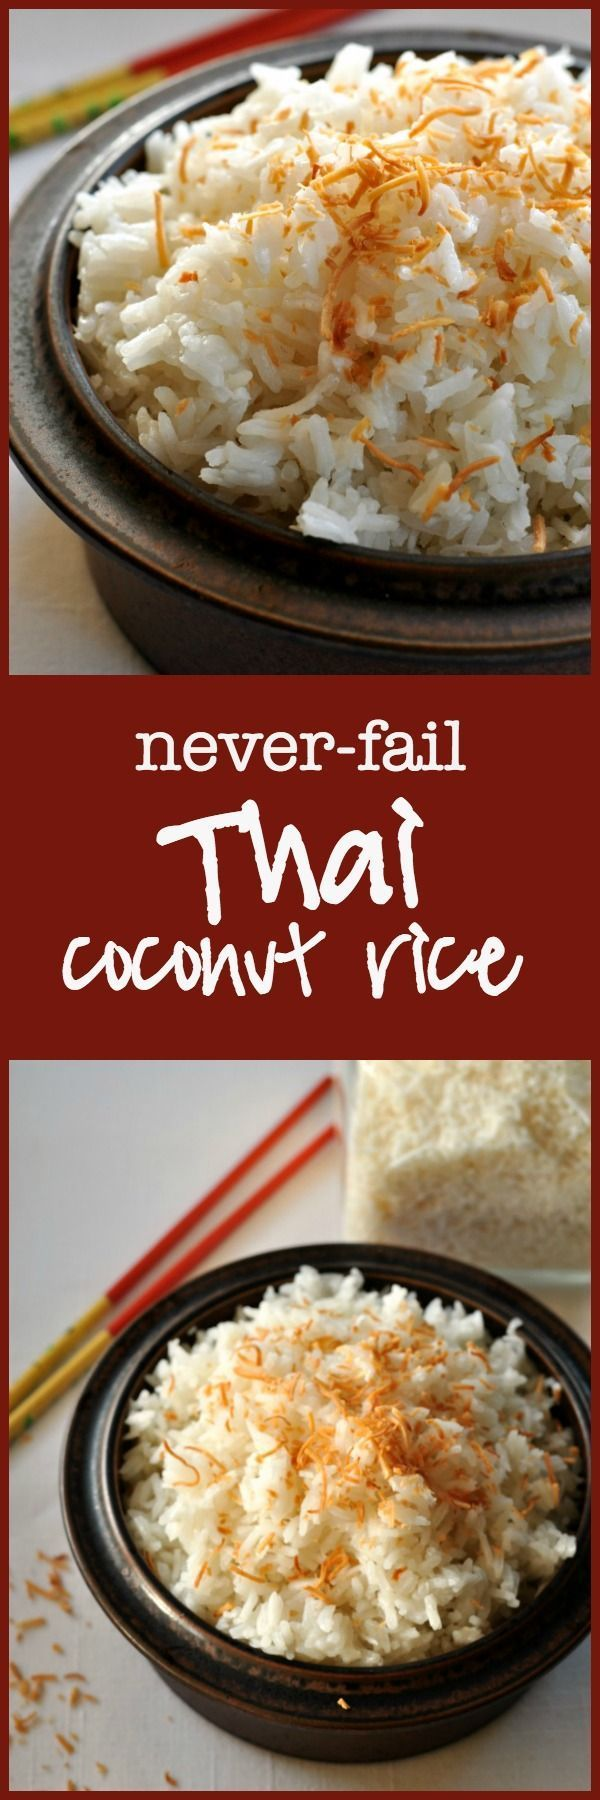 This Thai Coconut Rice hasn't failed me yet! Always turns out perfectly.